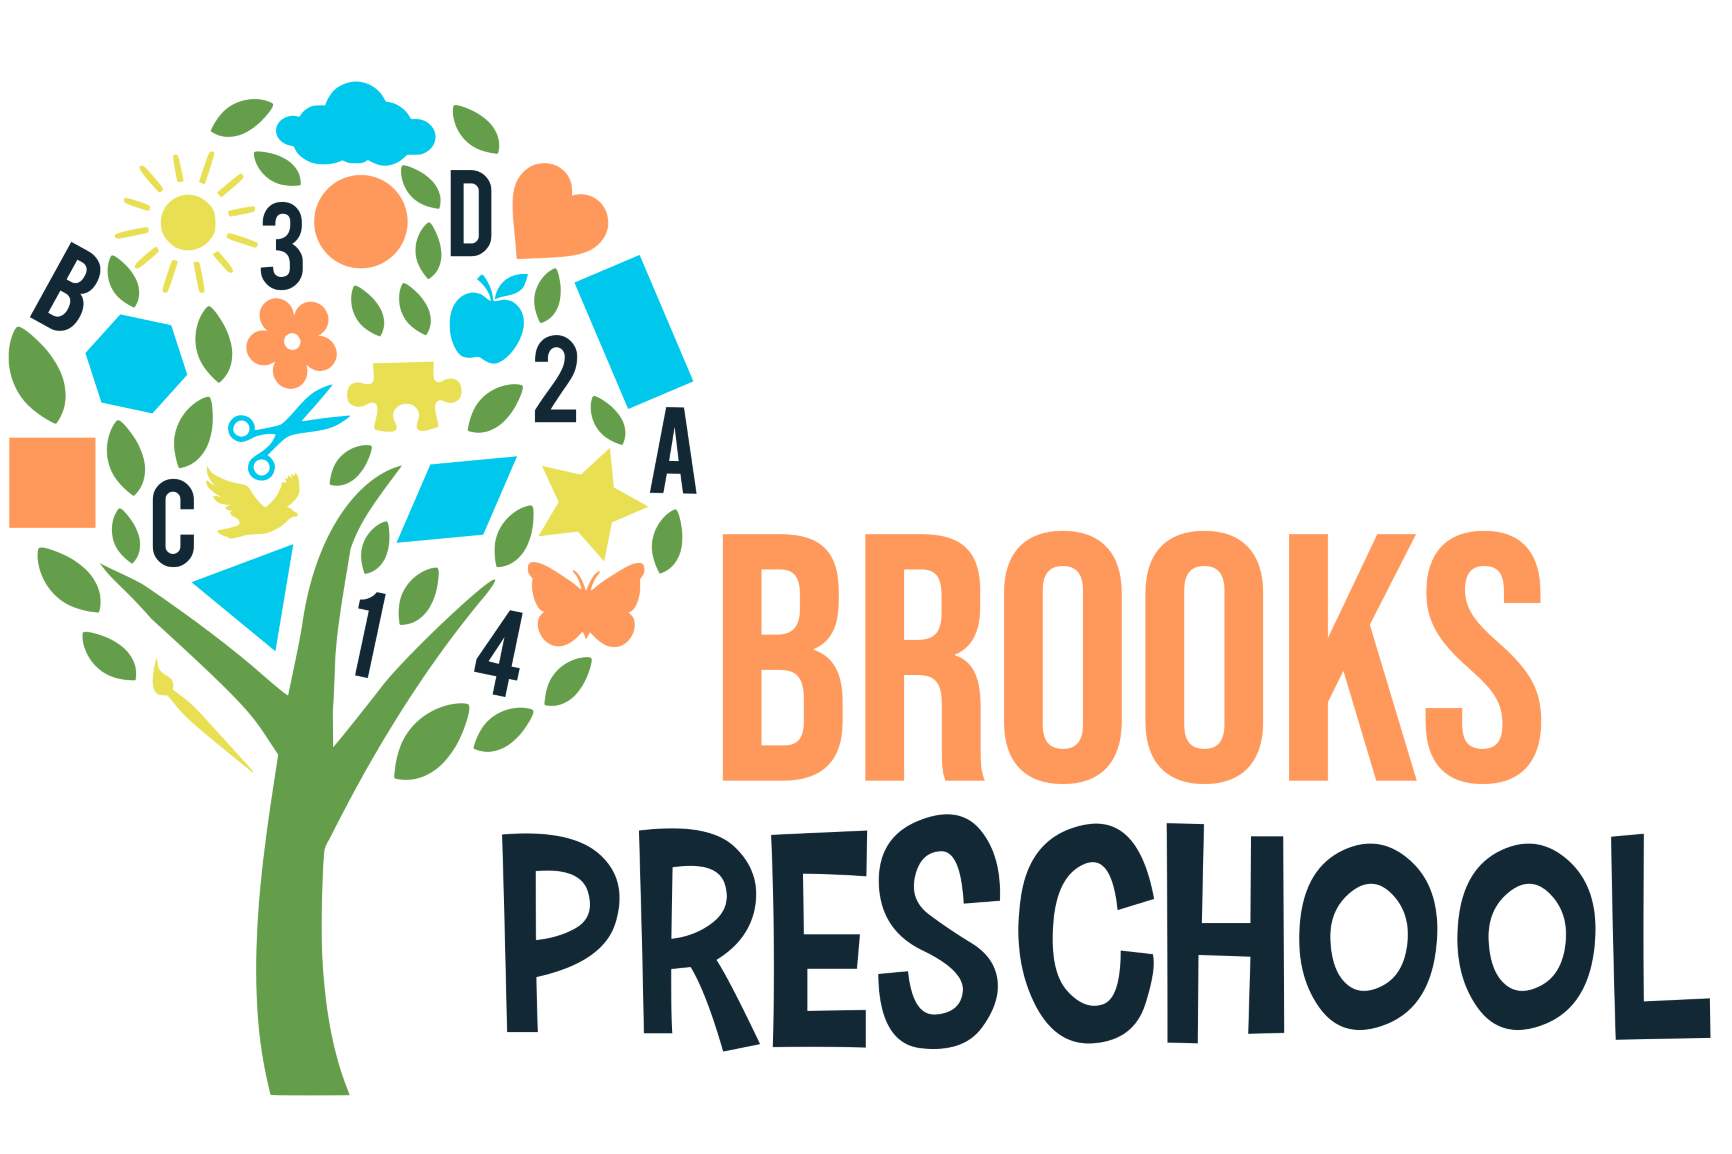 Brooks Preschool Society